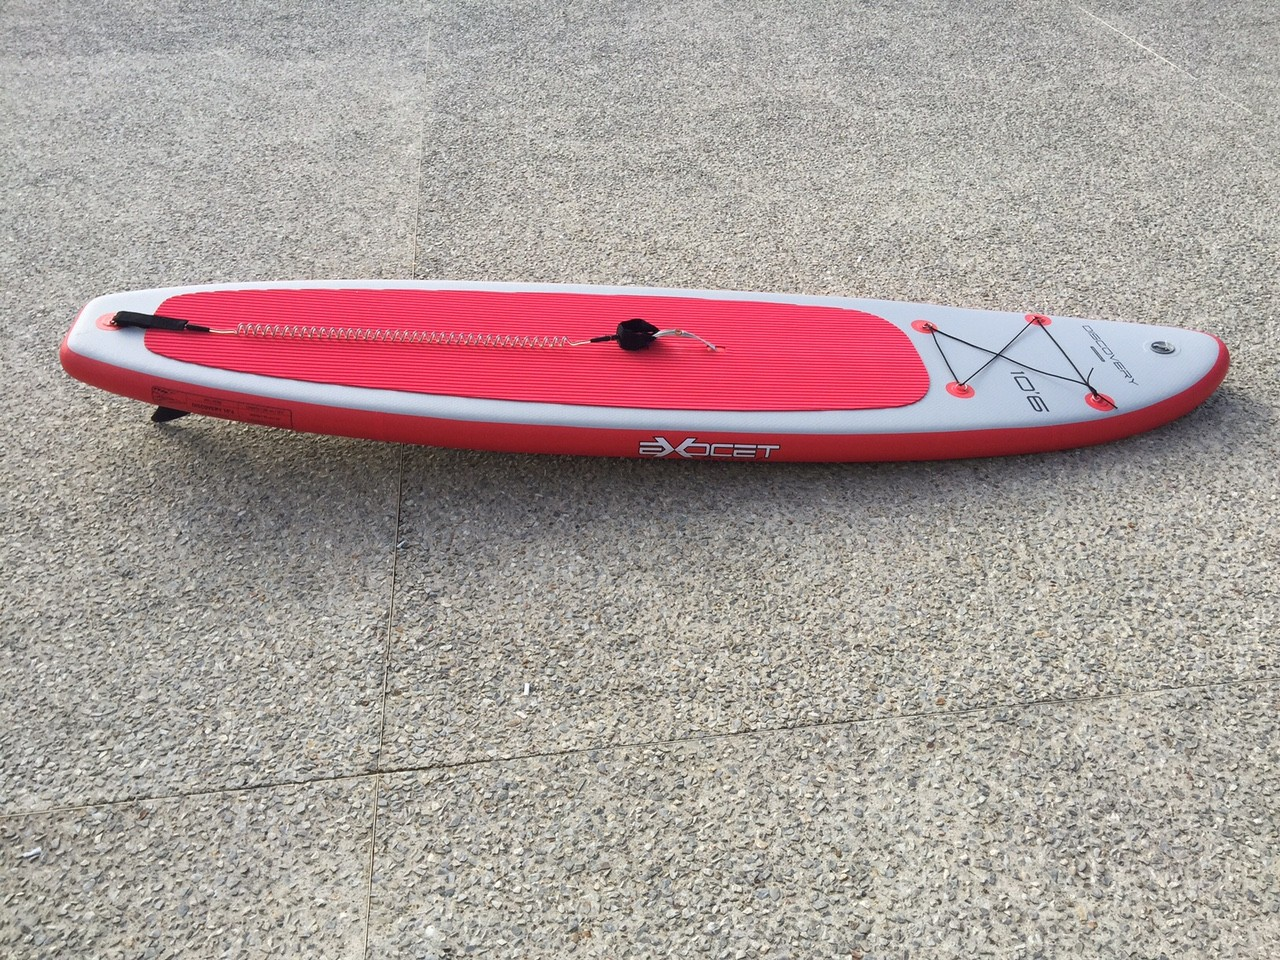 Paddle gonflable Exocet Discovery 10'6 occasion